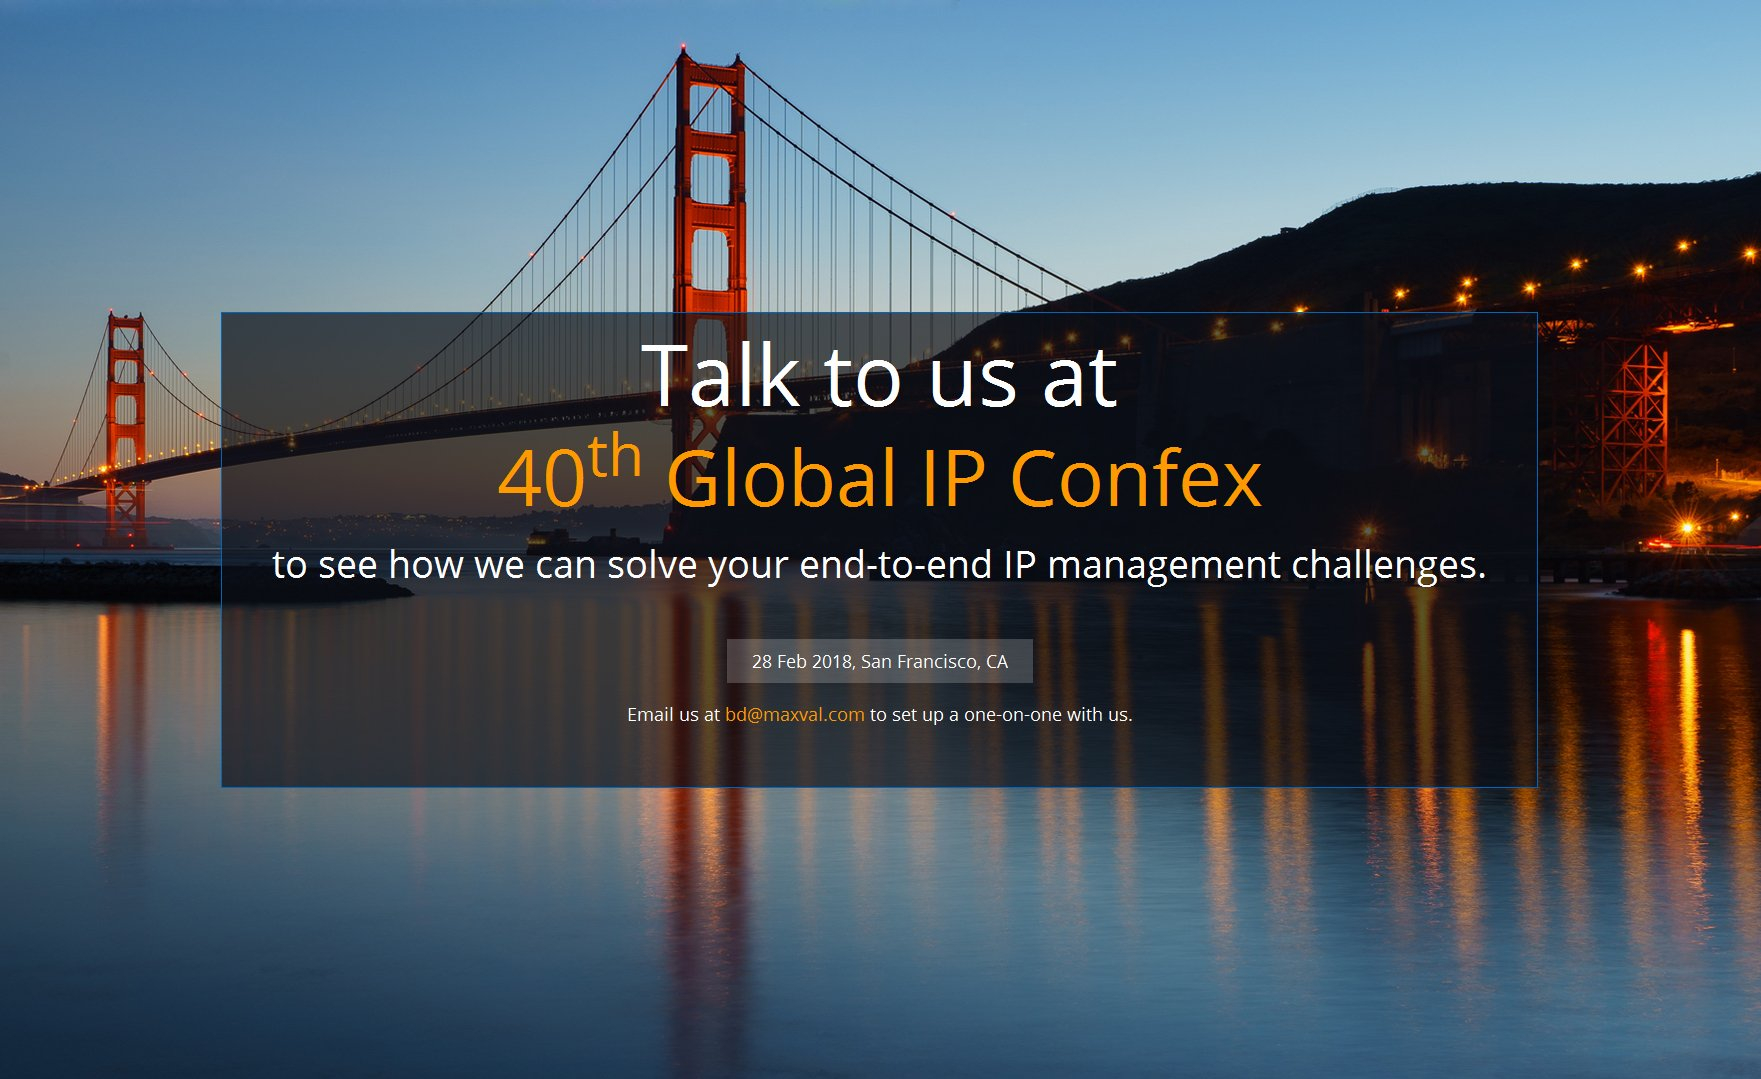 40-Global-IP-Confex-Banner-MaxVal